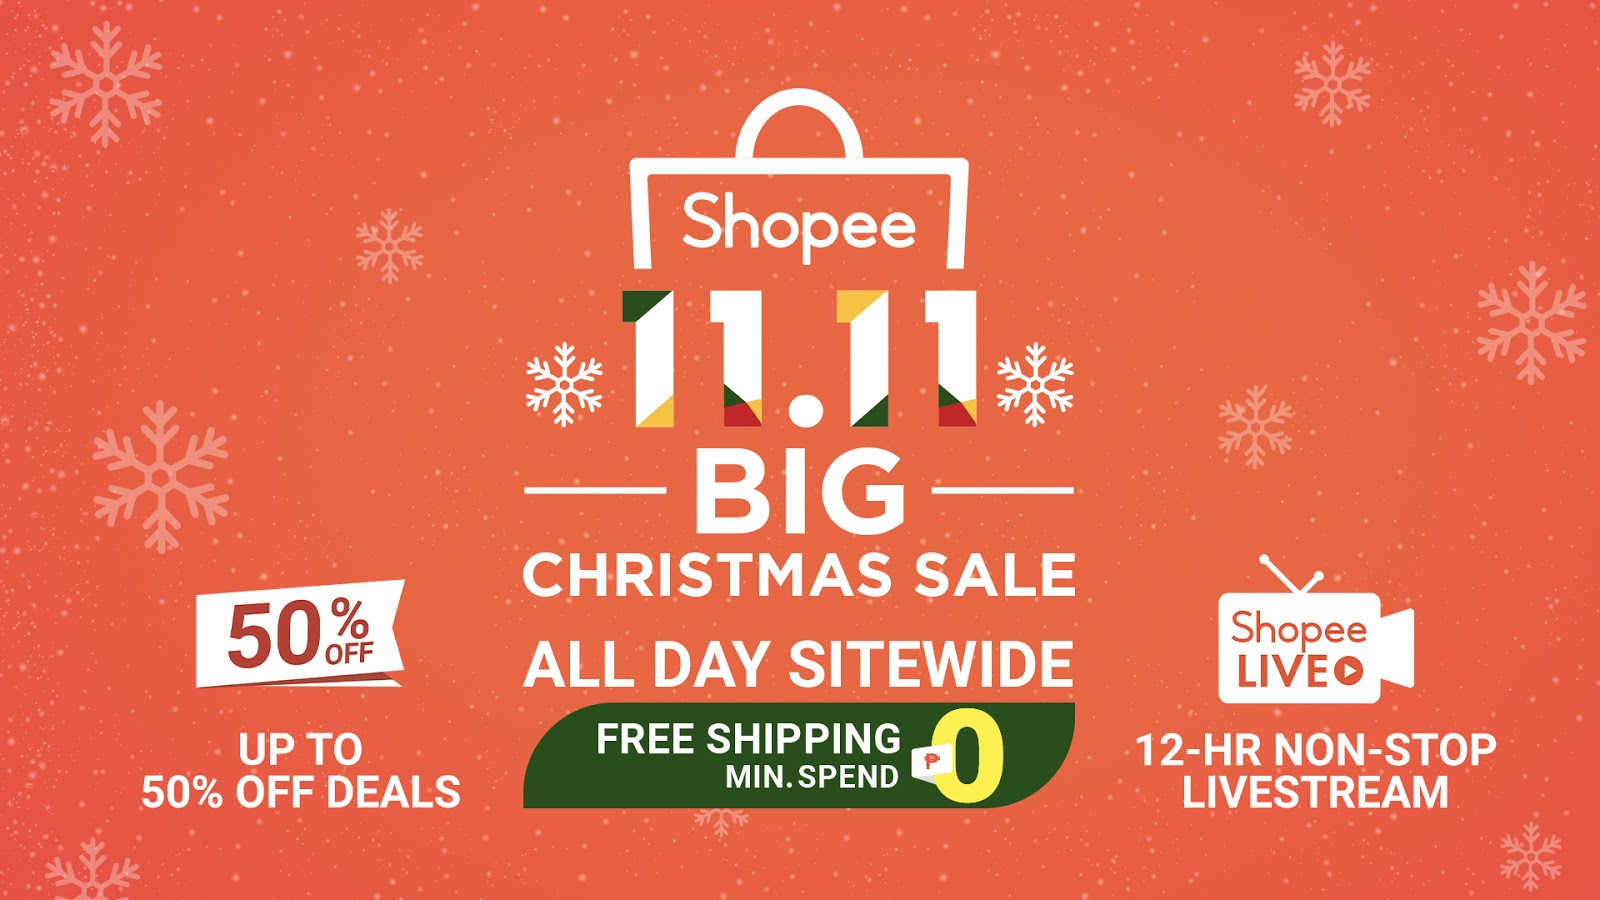 Shopee 11.11 Big Christmas Sale 2019.